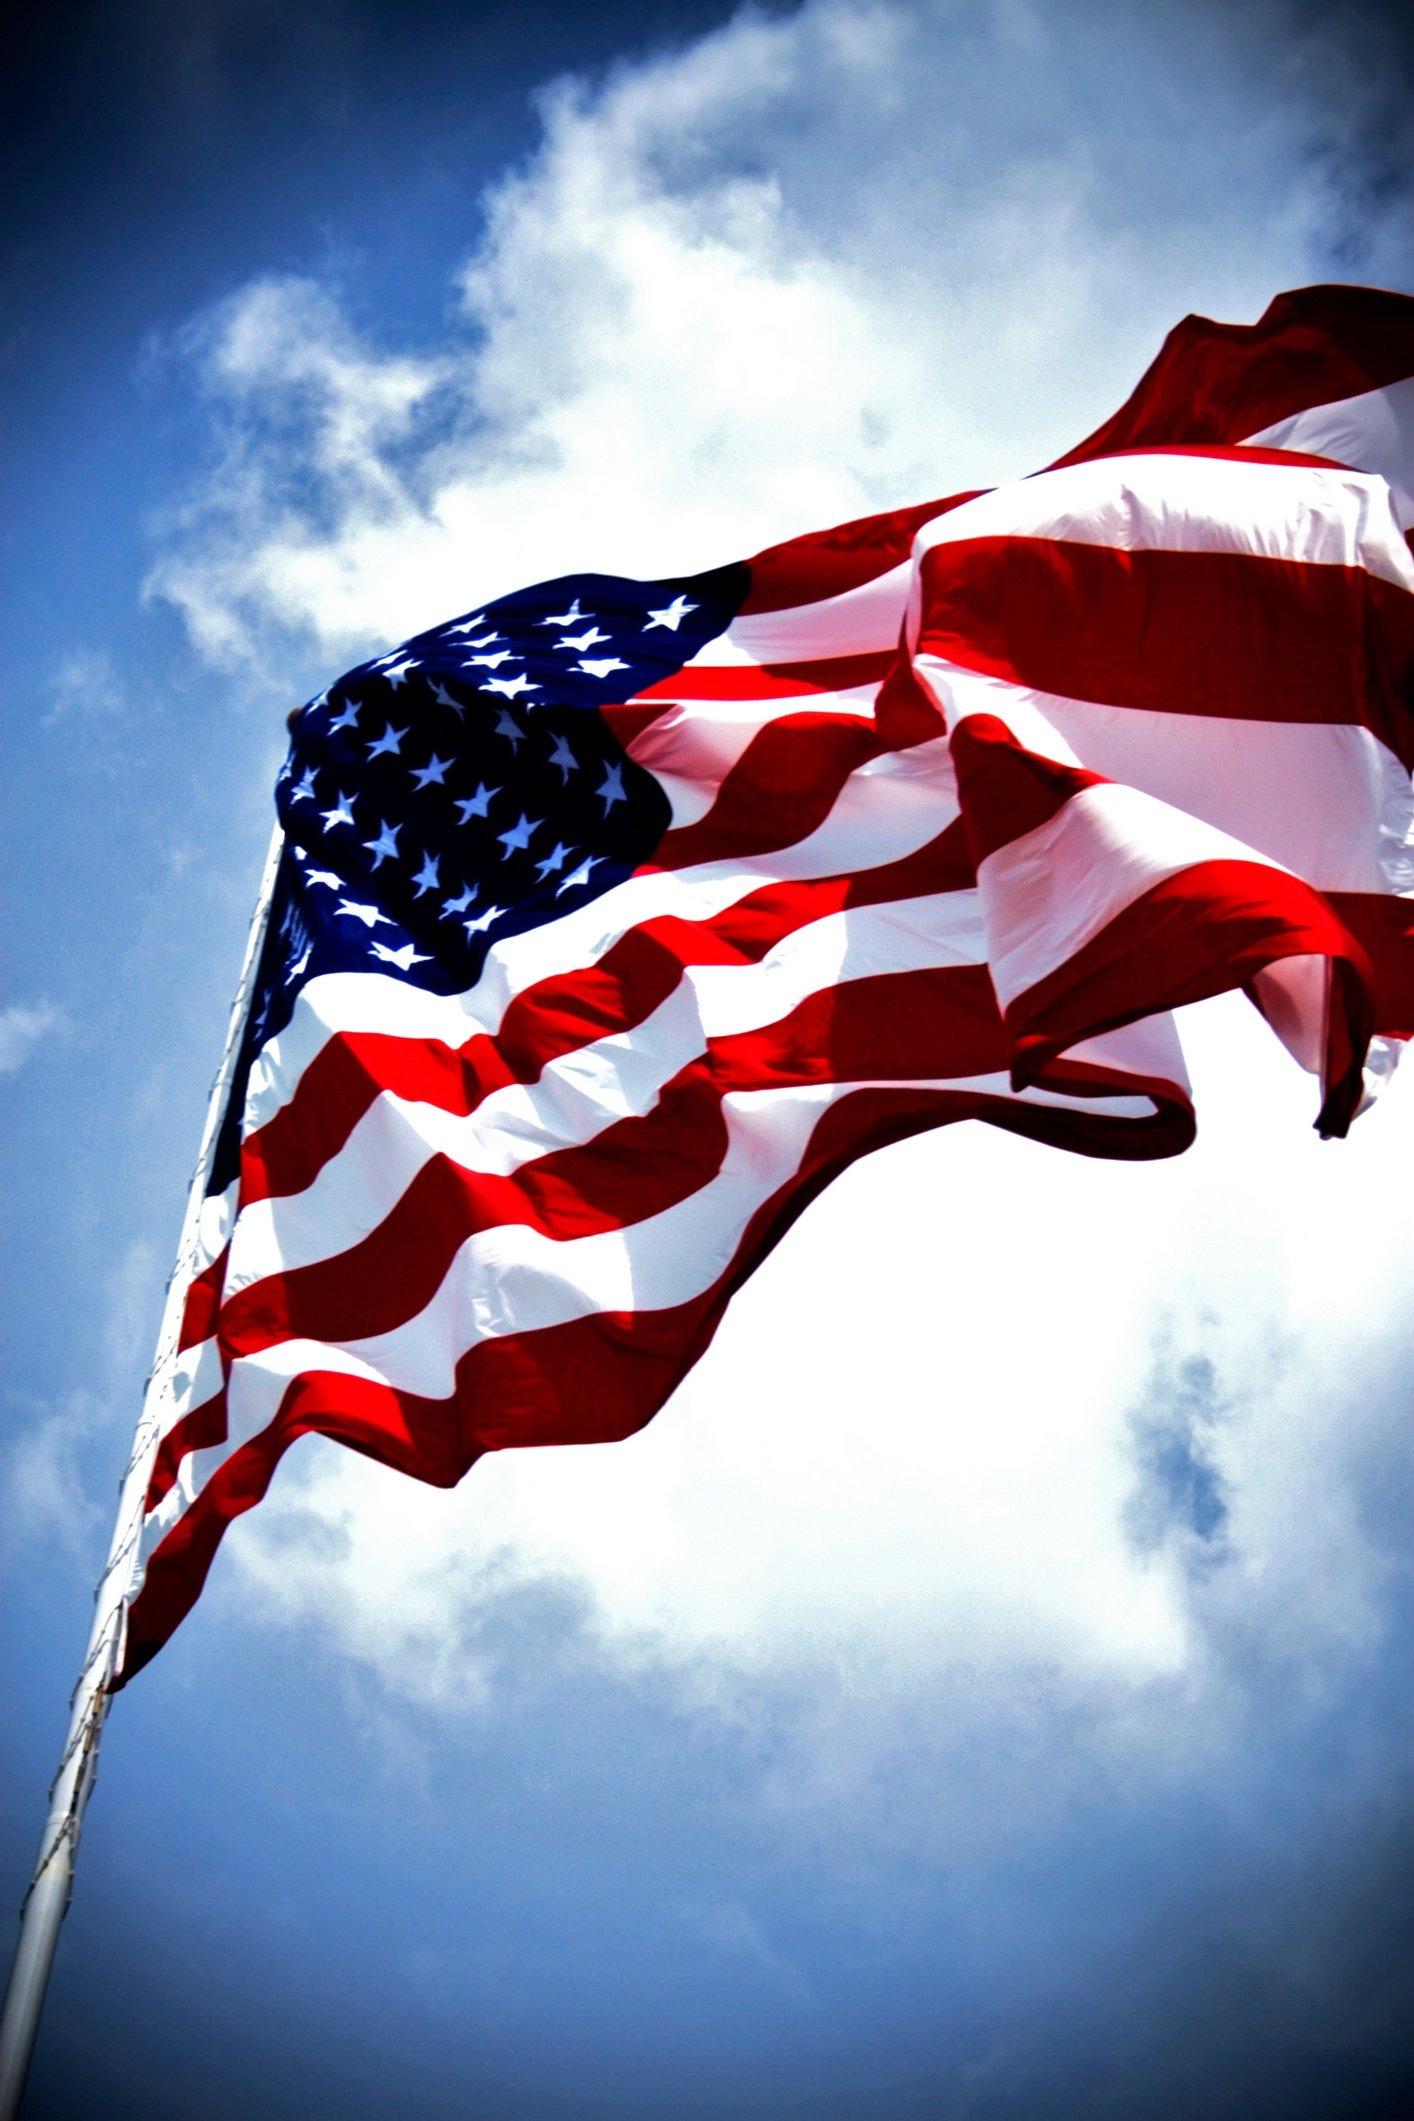 #FlagDay: The American Flag Is An Enduring Symbol Of Freedom And Liberty [VIDEOS]